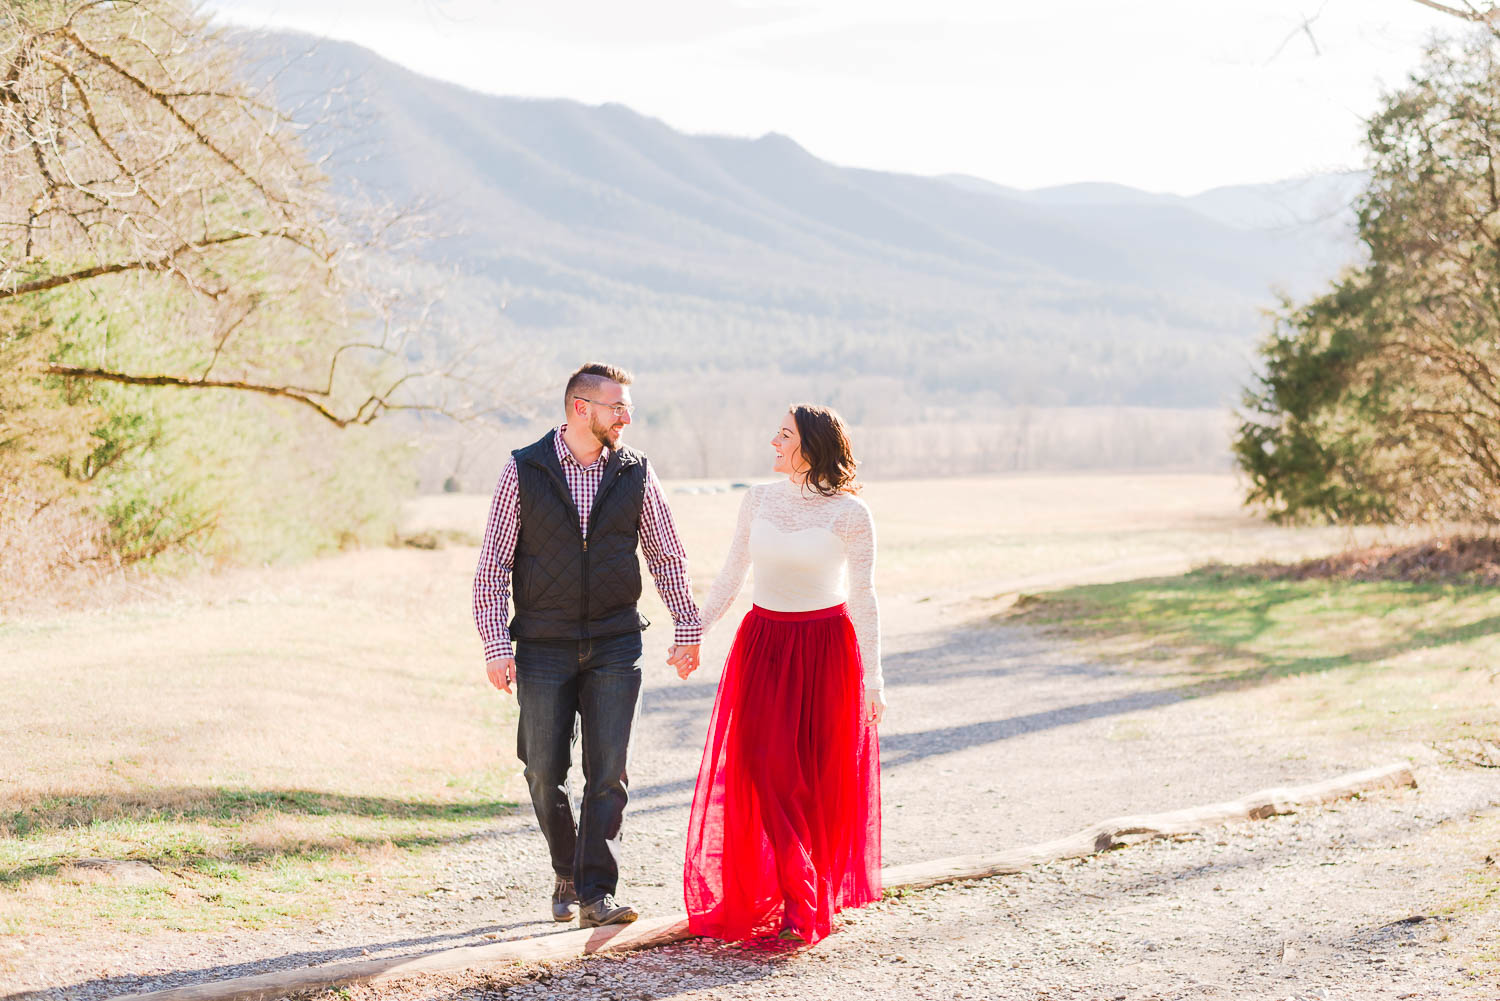 winter tennessee engagement photos of girl wearing red skirt and guy wearing navy and plaid